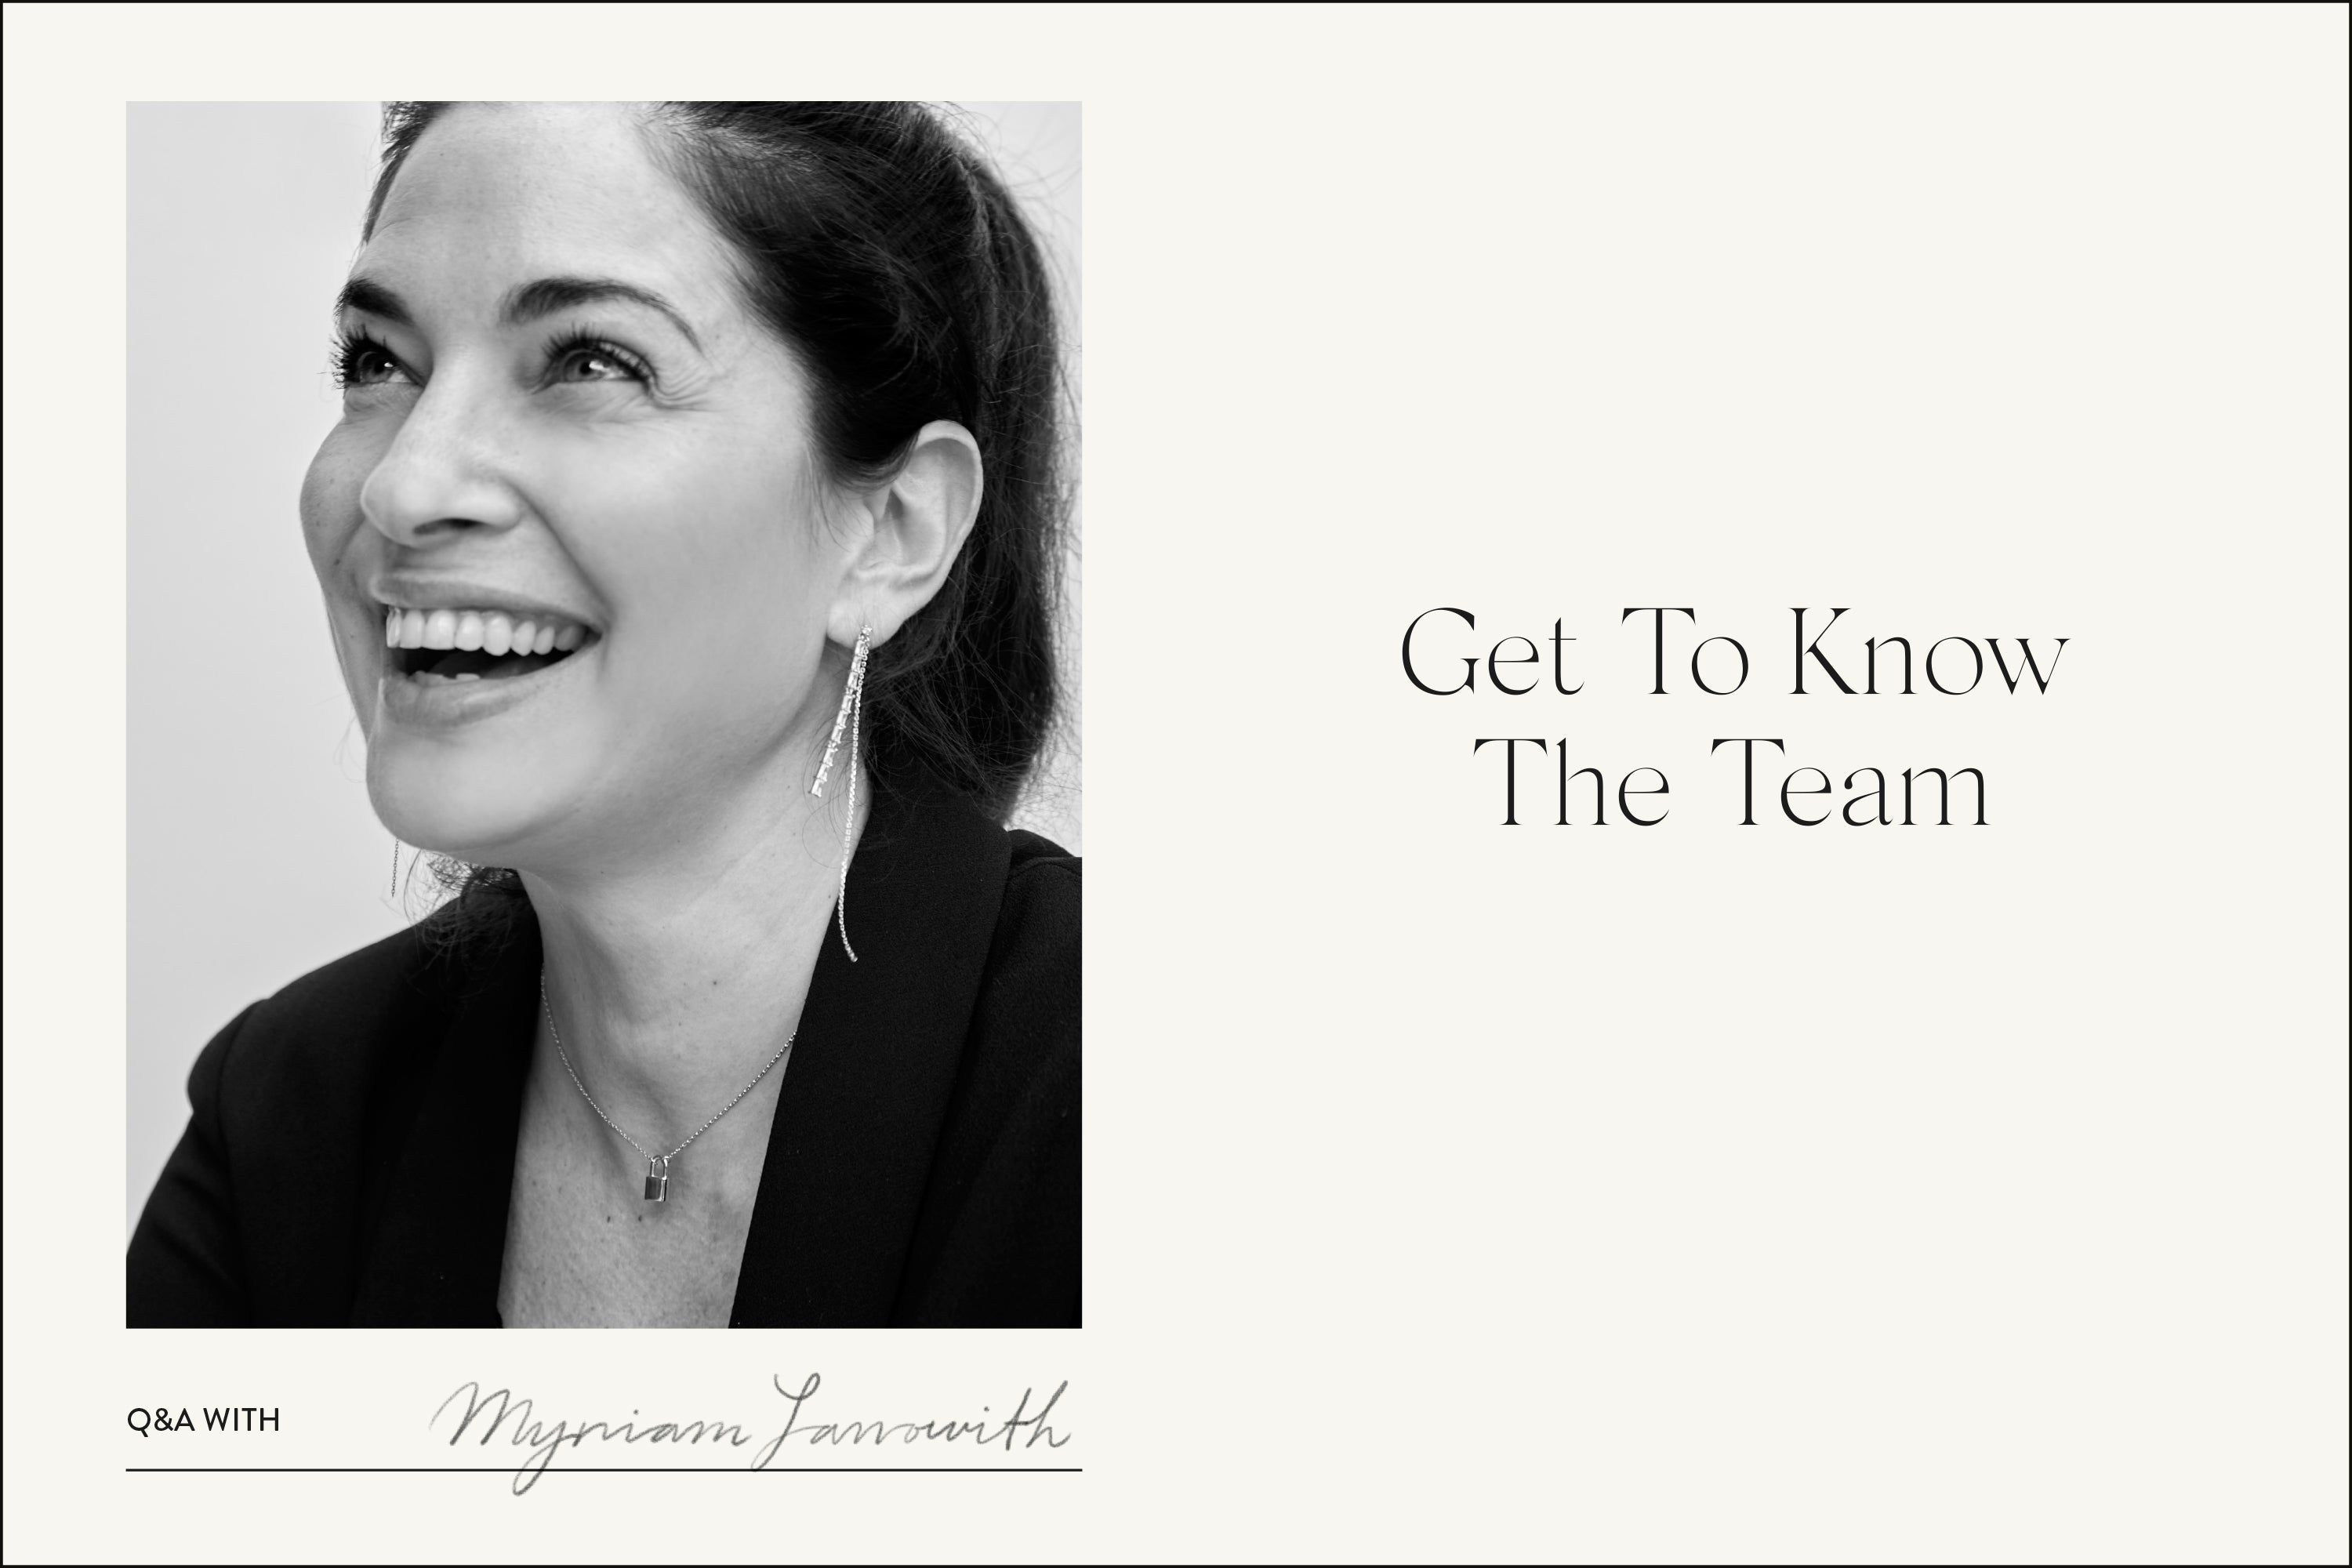 Get To Know the team! Q&A with Myriam Lanowith